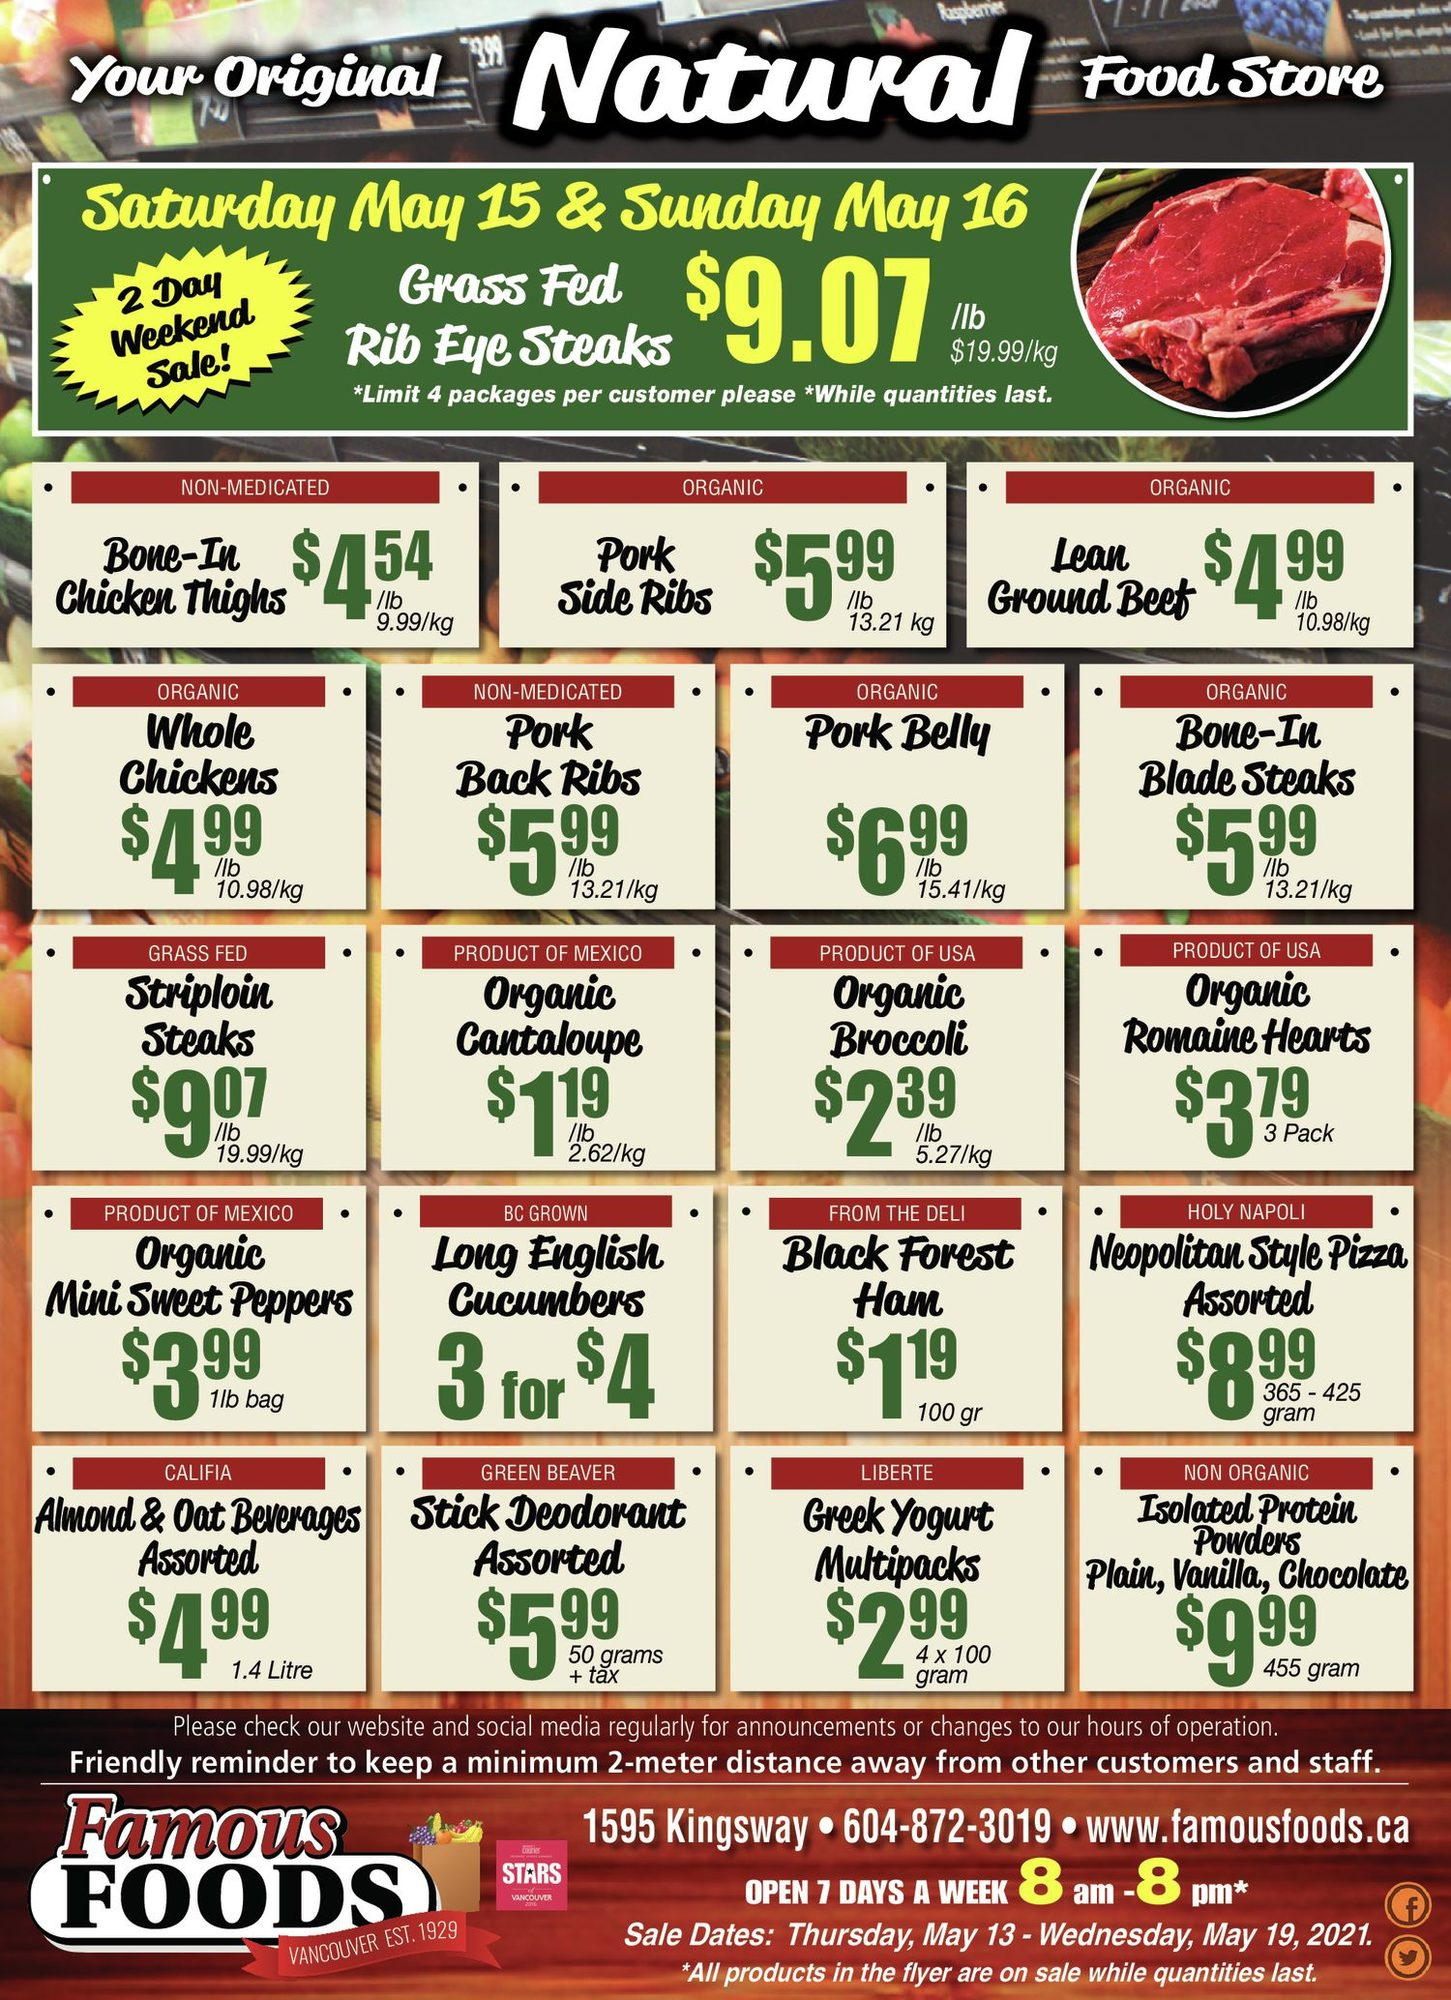 Famous Foods - Weekly Flyer Specials